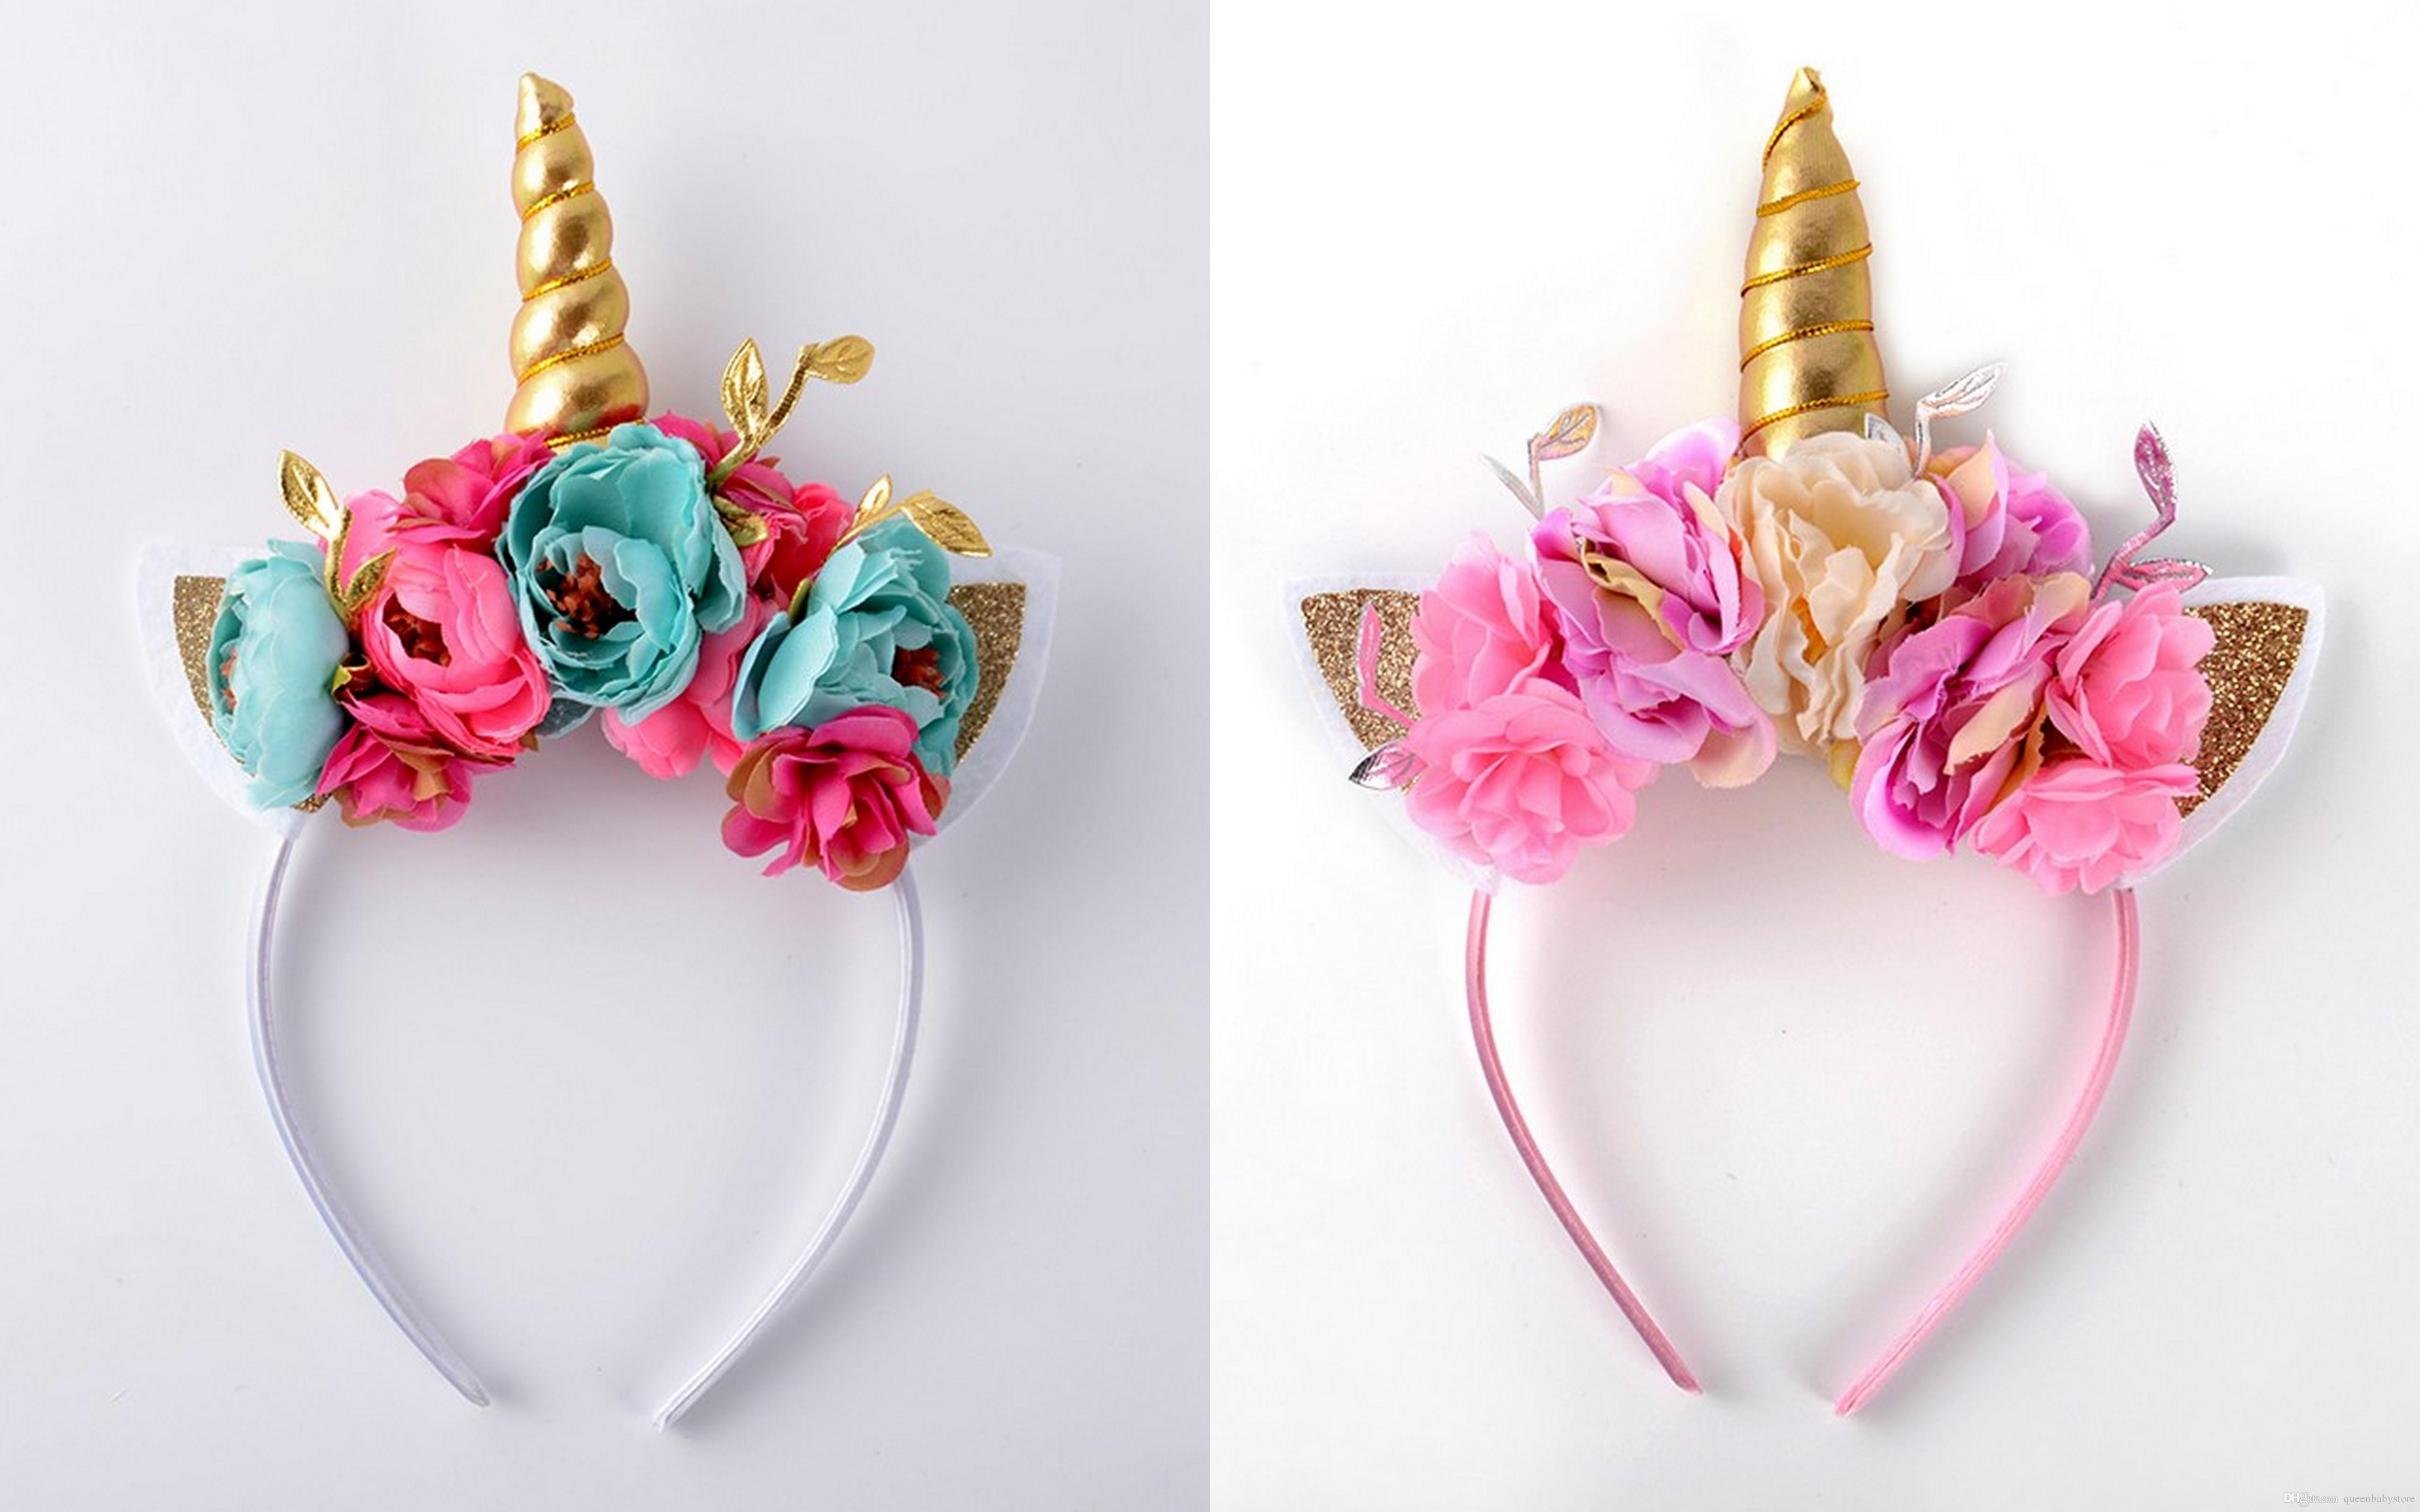 Unicorn Headband Lace Flower Crown Hair Accessories For Girls Birthday Gifts New